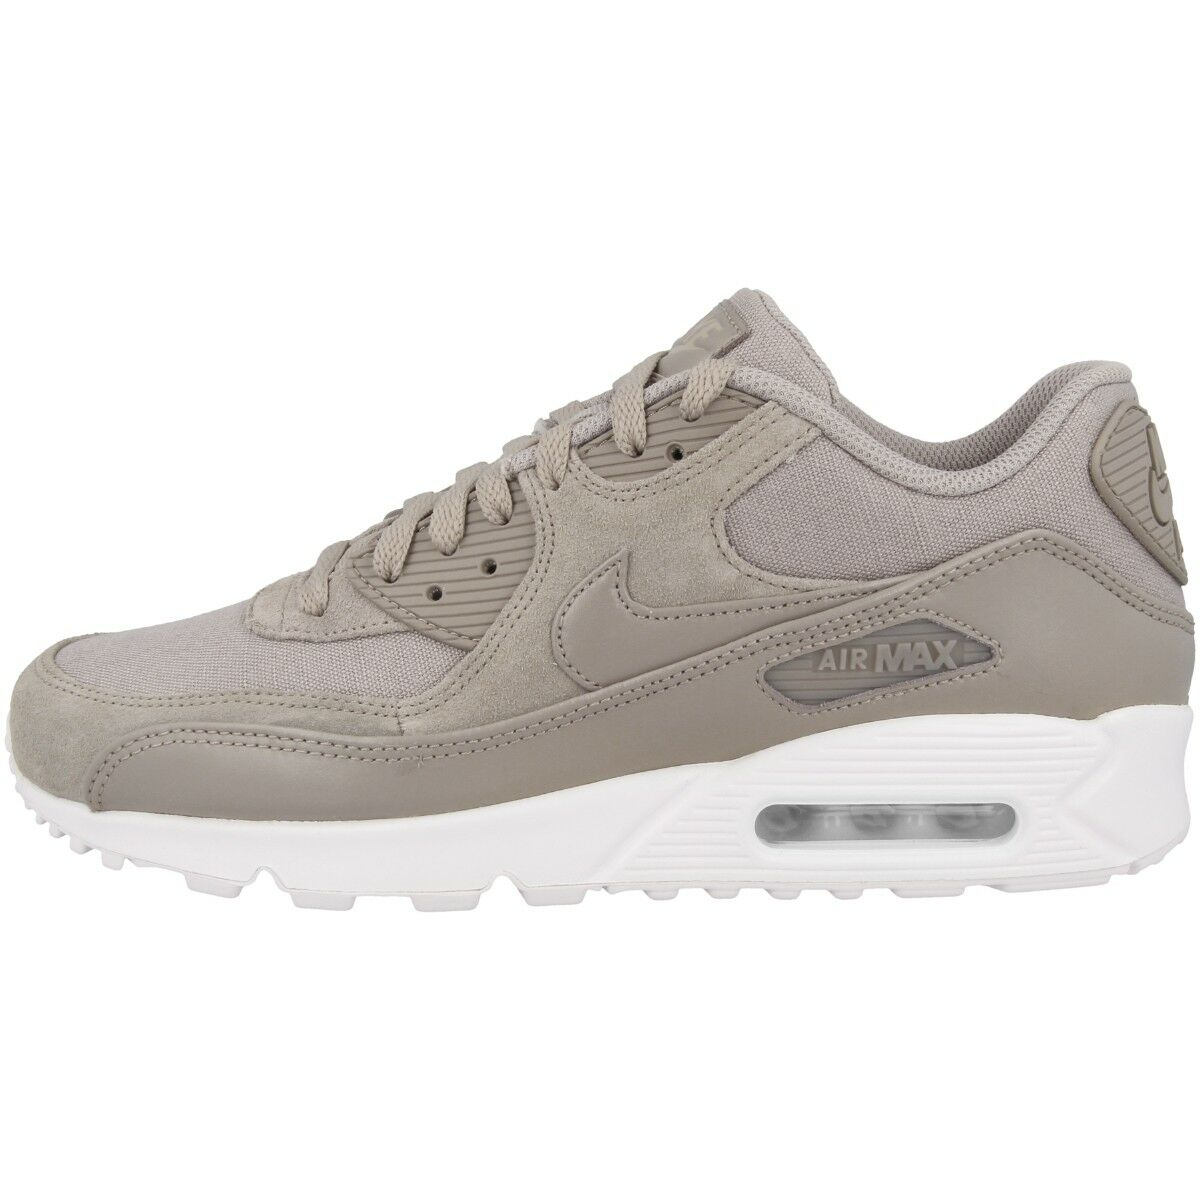 Nike Air Max 90 Premium Zapatillas Cobblestone Blanco Essential BW 700155-007